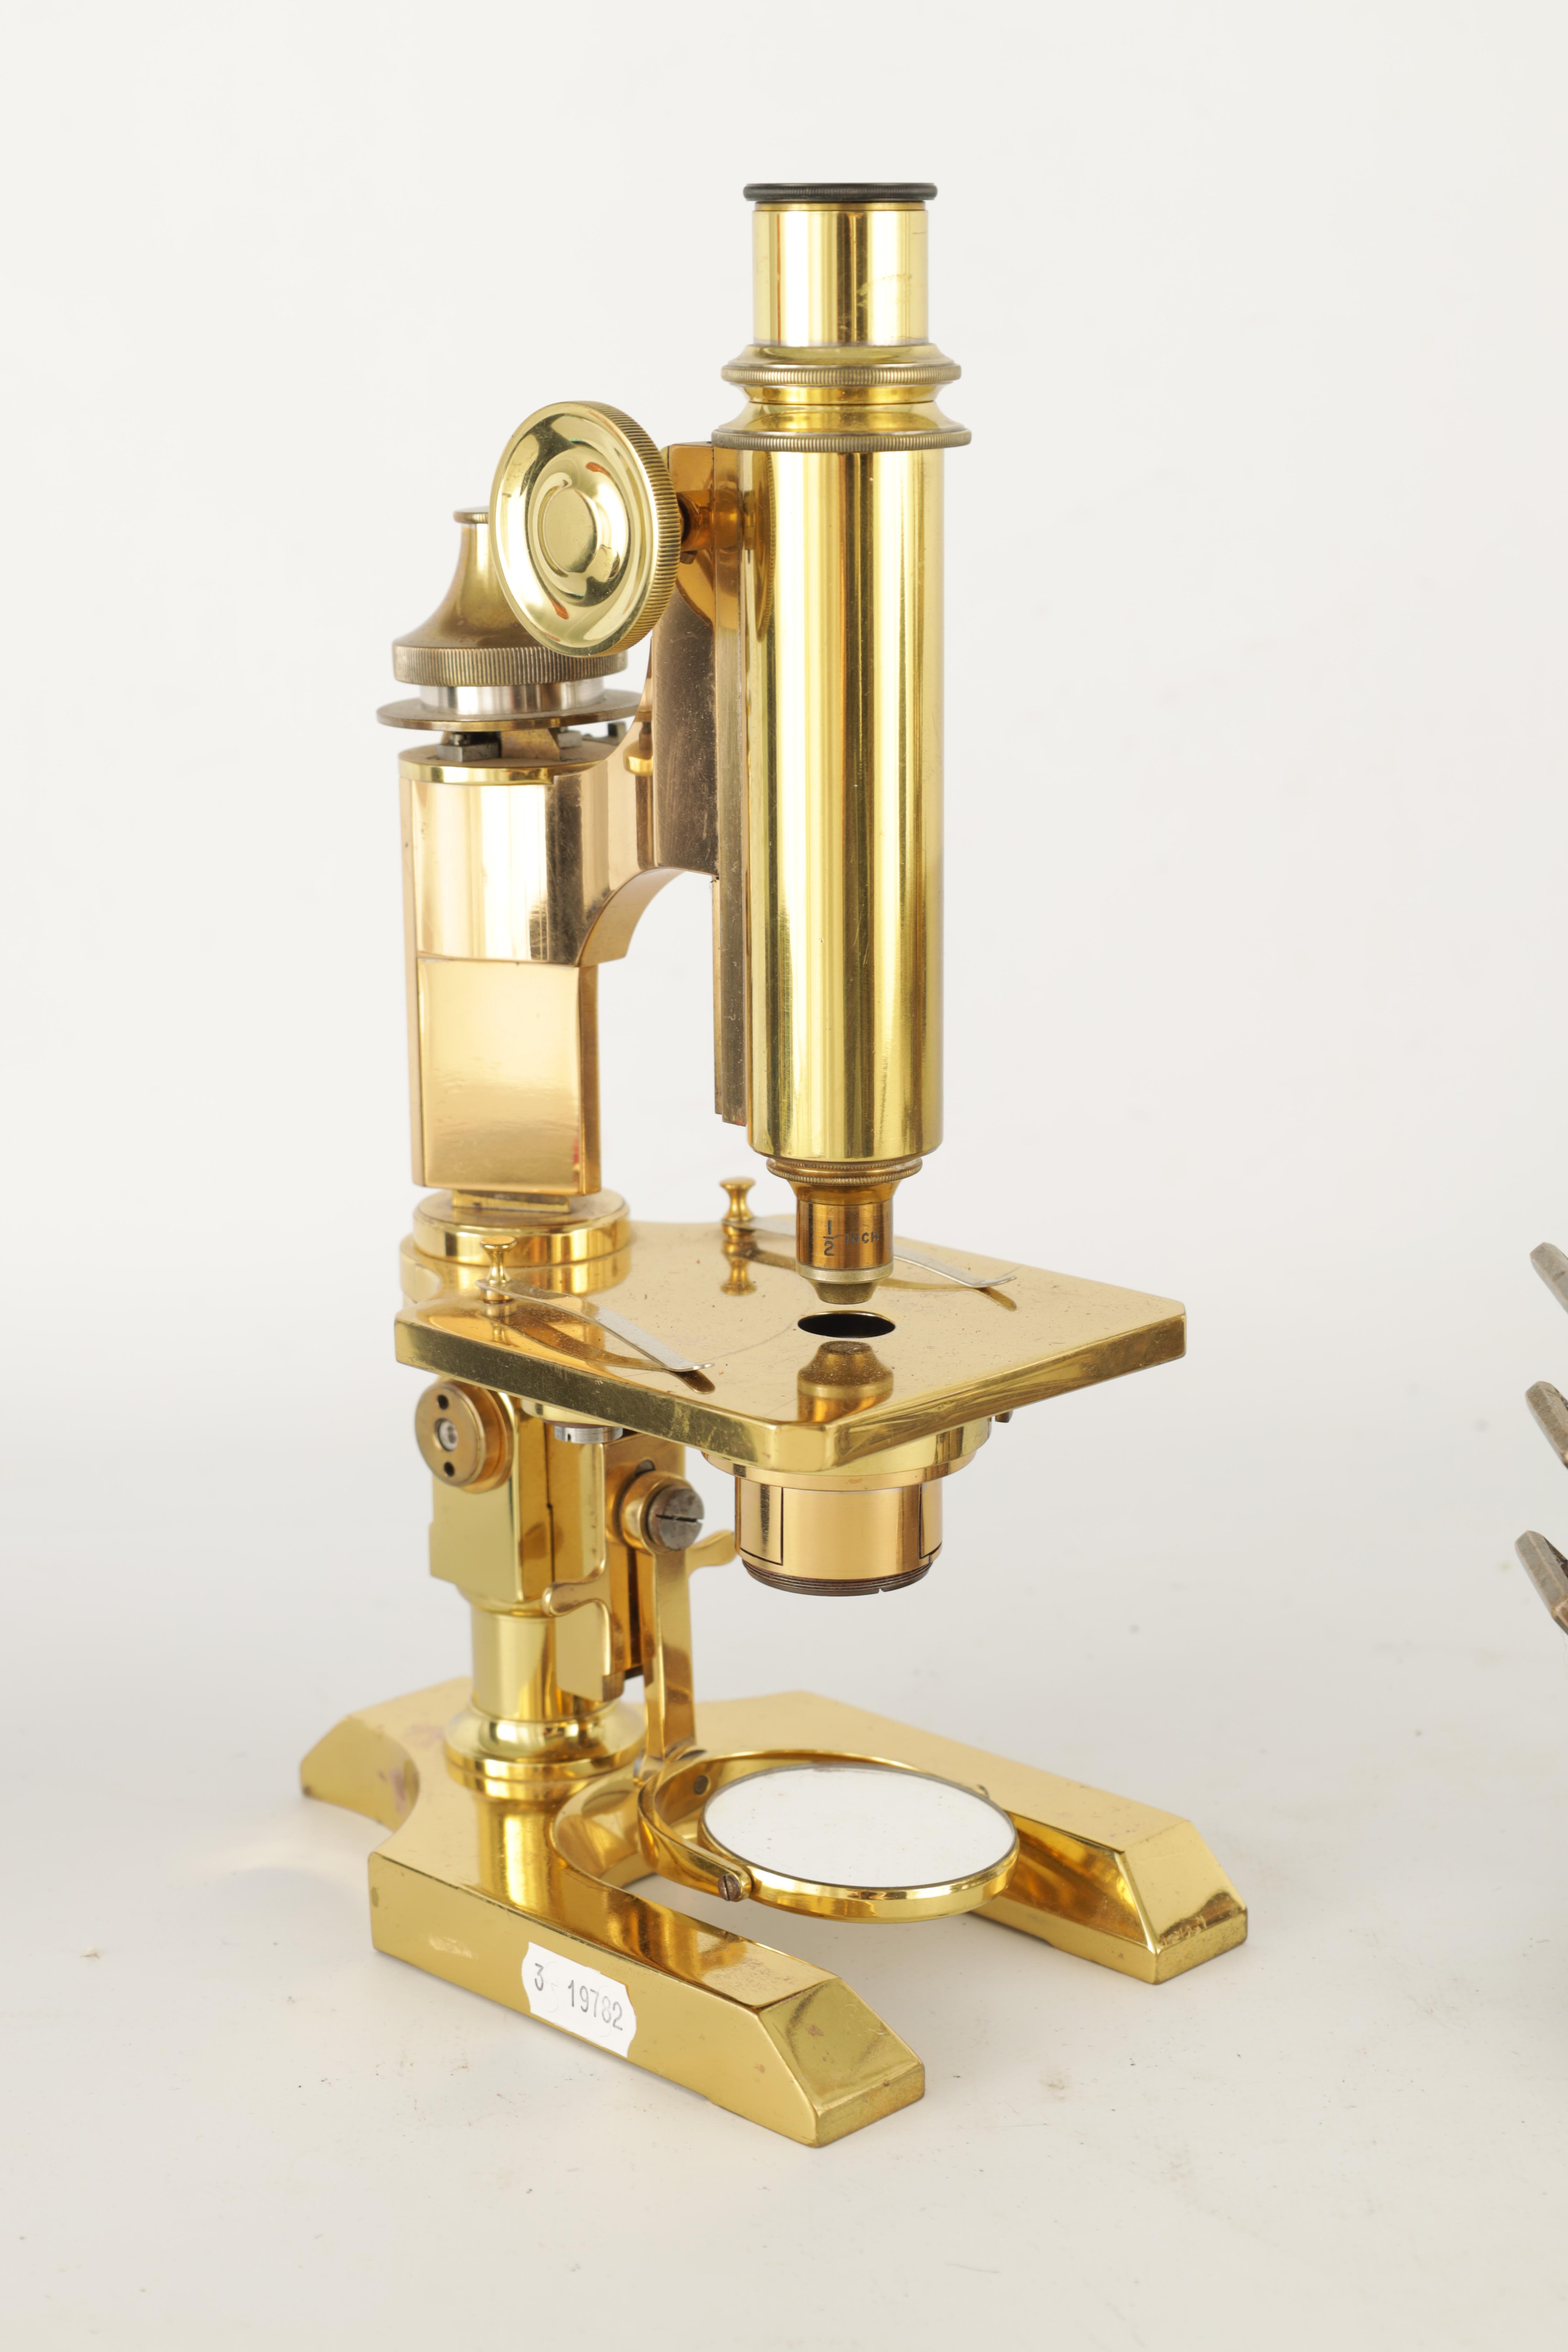 A 19TH CENTURY LACQUERED BRASS MONOCULAR MICROSCOPE with shaped base and rack and pinion focusing - Image 2 of 4